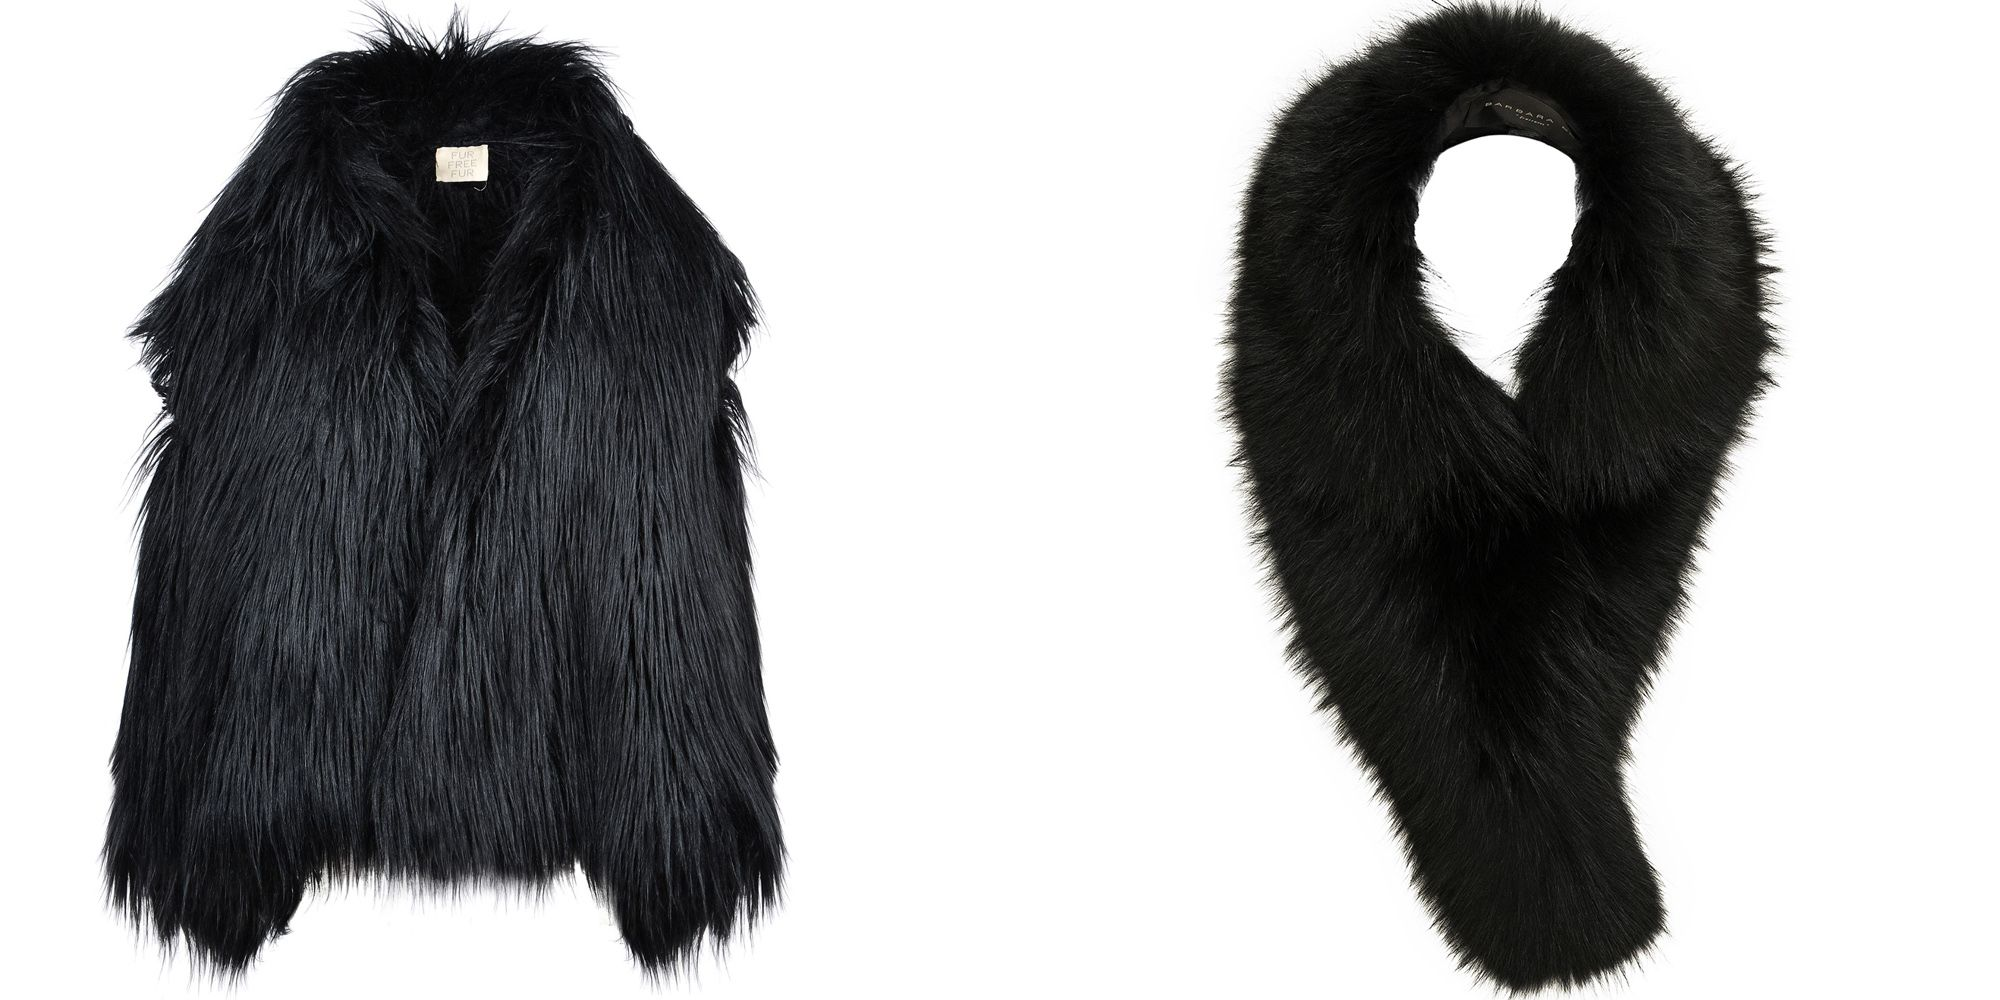 "<p><em>Stella McCartney faux fur stole, $2,770, <a href=""http://www.stellamccartney.com/us/stella-mccartney/long_cod41577586tu.html"">stellamccartney.com</a>; Barbara Bui stole, $1,022, <a href=""http://www.fwrd.com/product-barbara-bui-fur-stole-in-black/BARB-WV1/"">fwrd.com</a>.</em></p>"